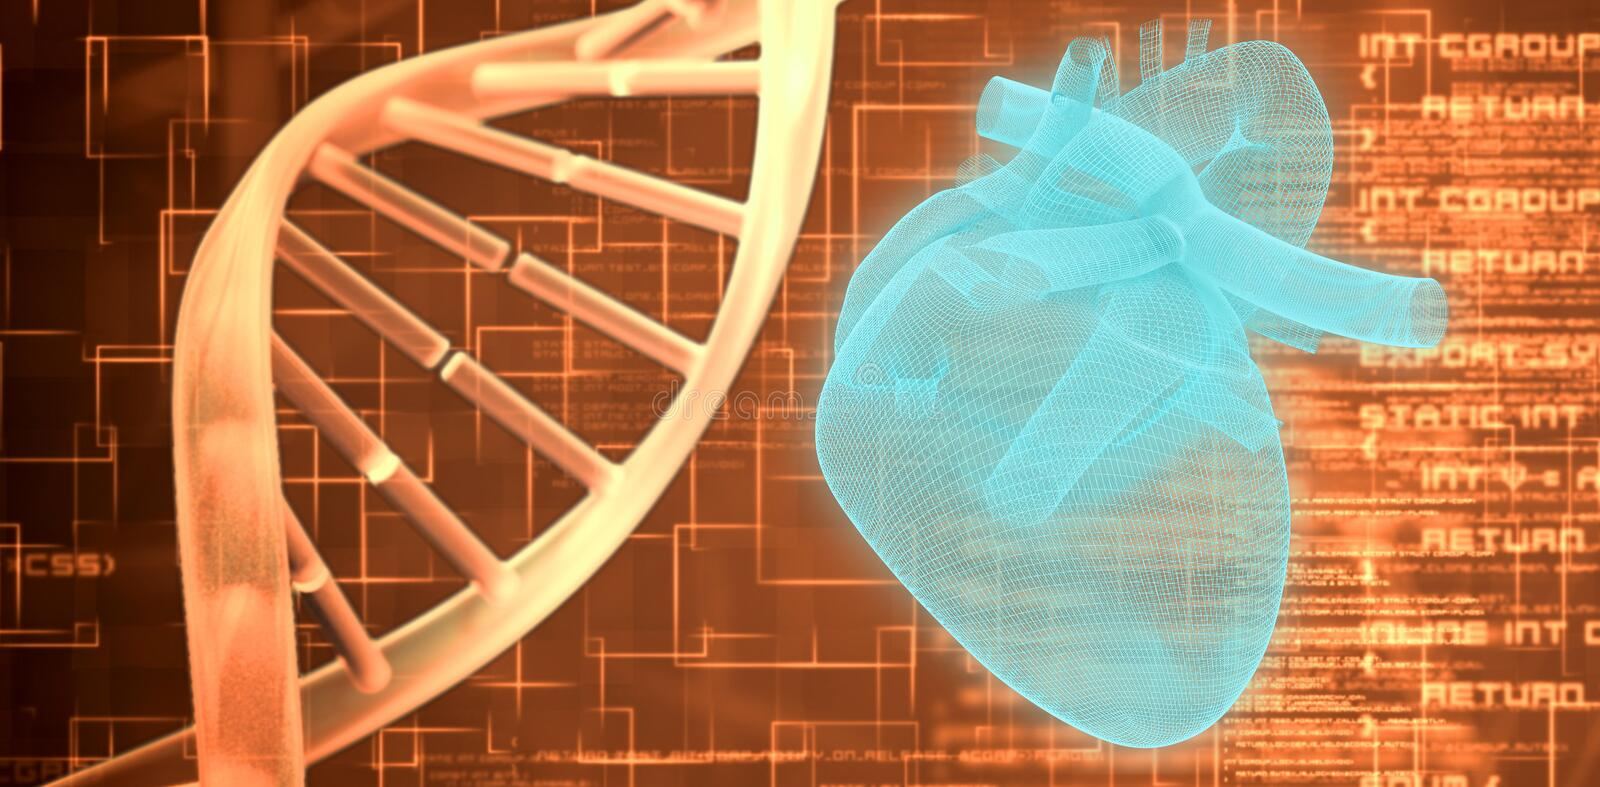 Composite image of 3d image of human heart. 3d image of human heart against orange dna helix background squares royalty free illustration